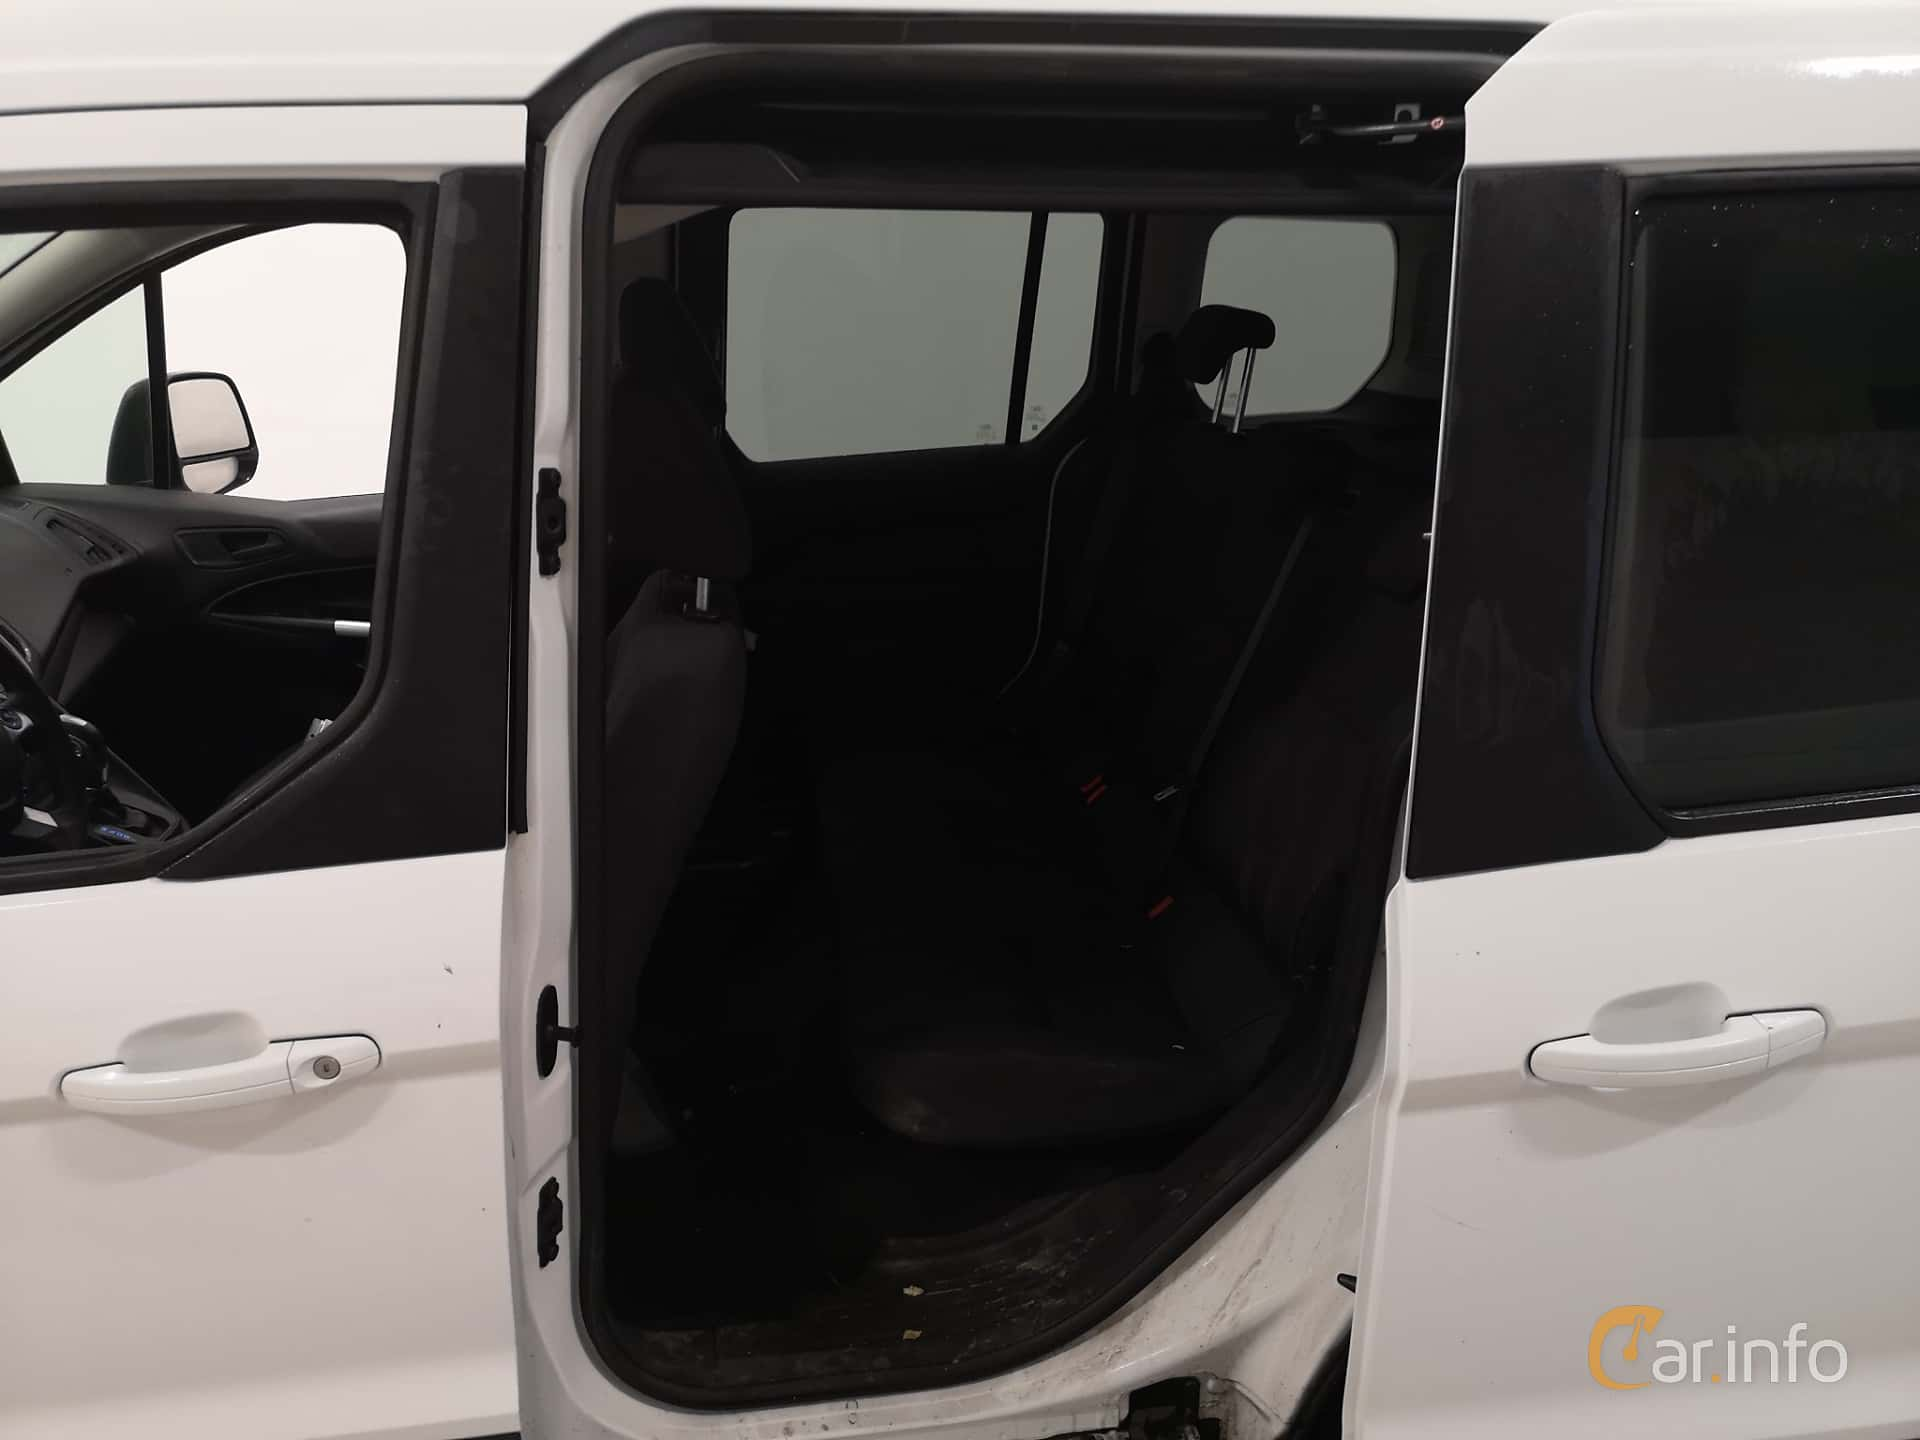 Ford Tourneo Connect 1.6 EcoBoost SelectShift, 150hp, 2014